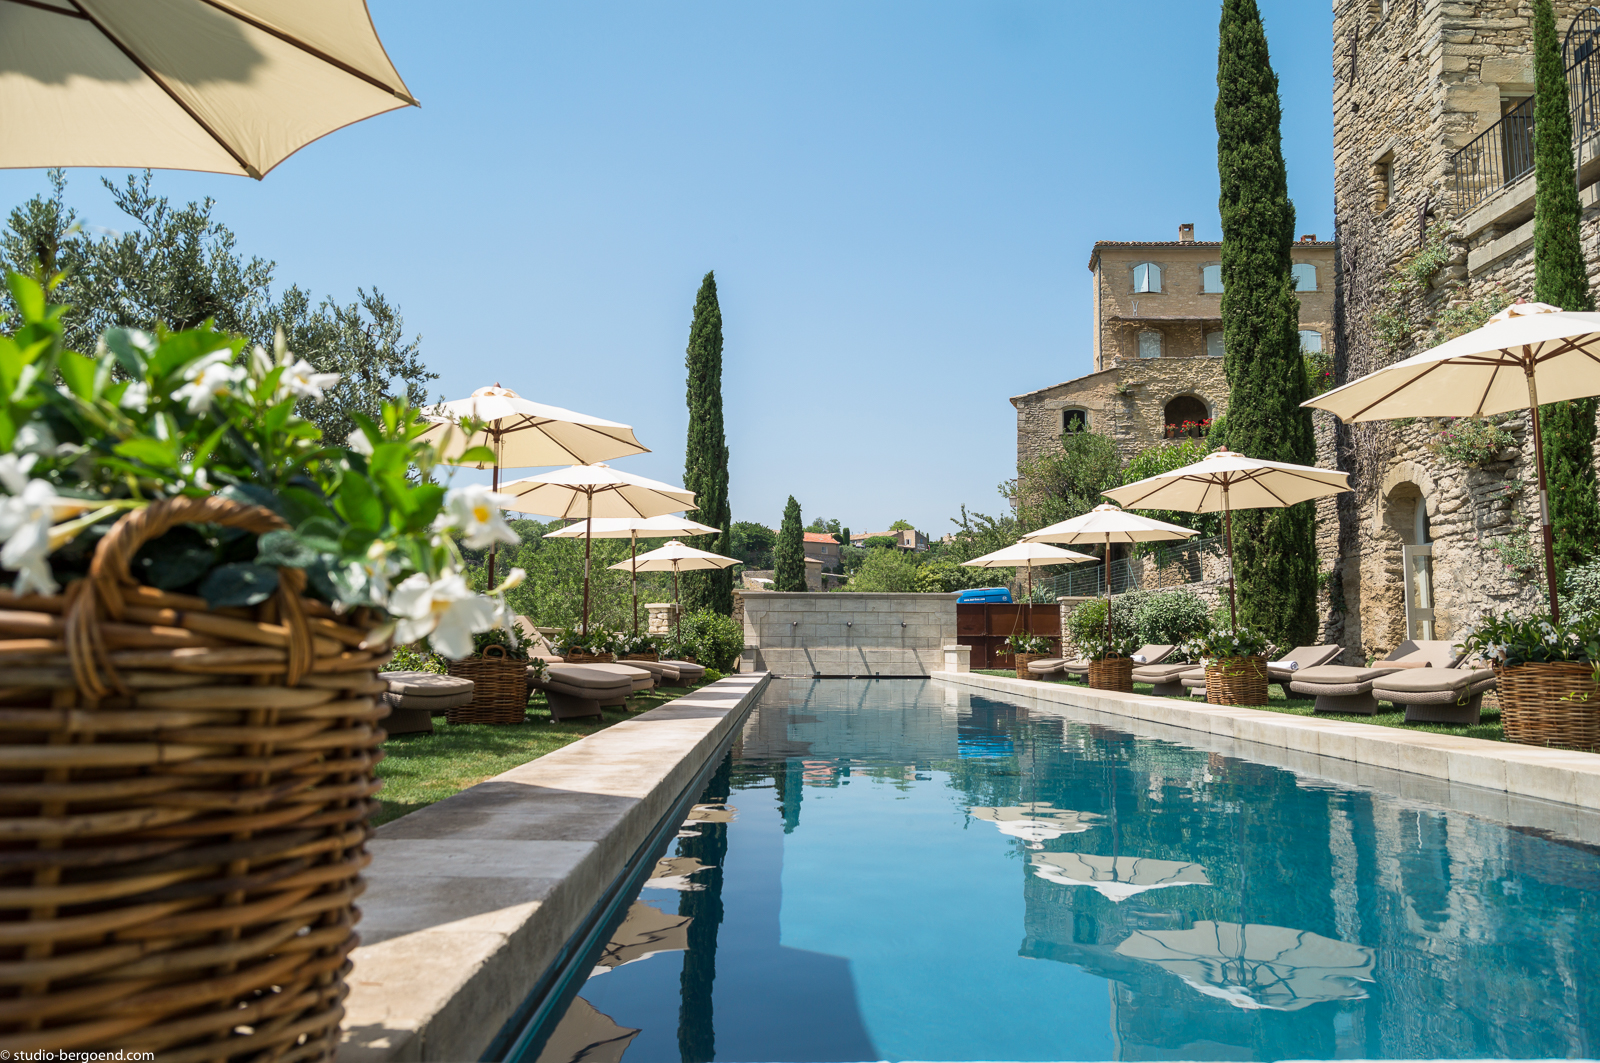 Provence's Bastide de Gordes is Open Again